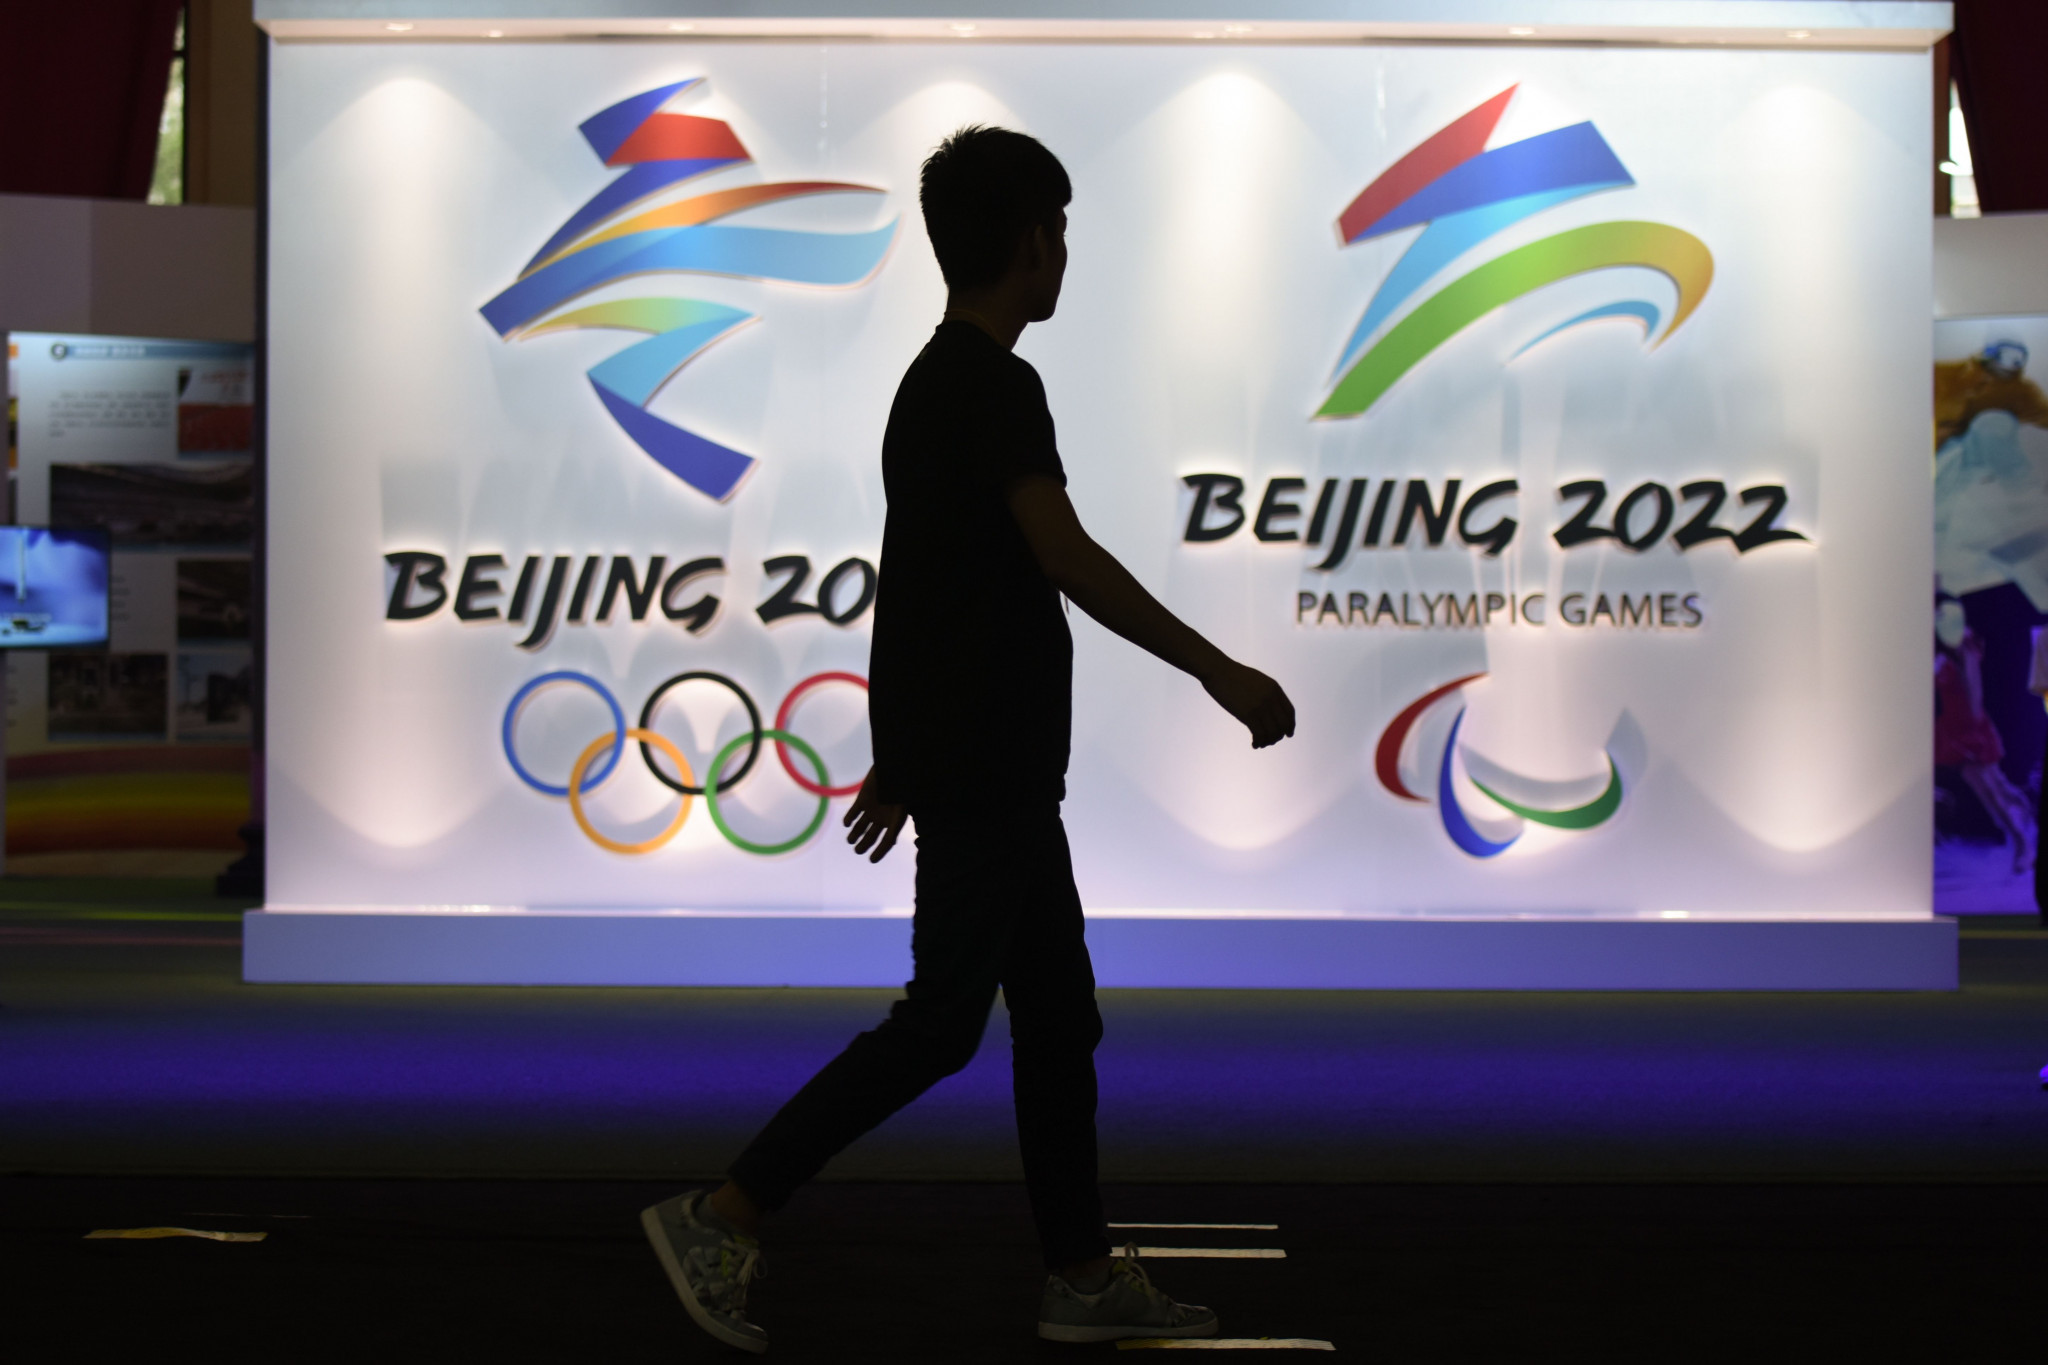 The Beijing 2022 Olympics are still set to go ahead despite accusations of human rights abuses in China ©Getty Images